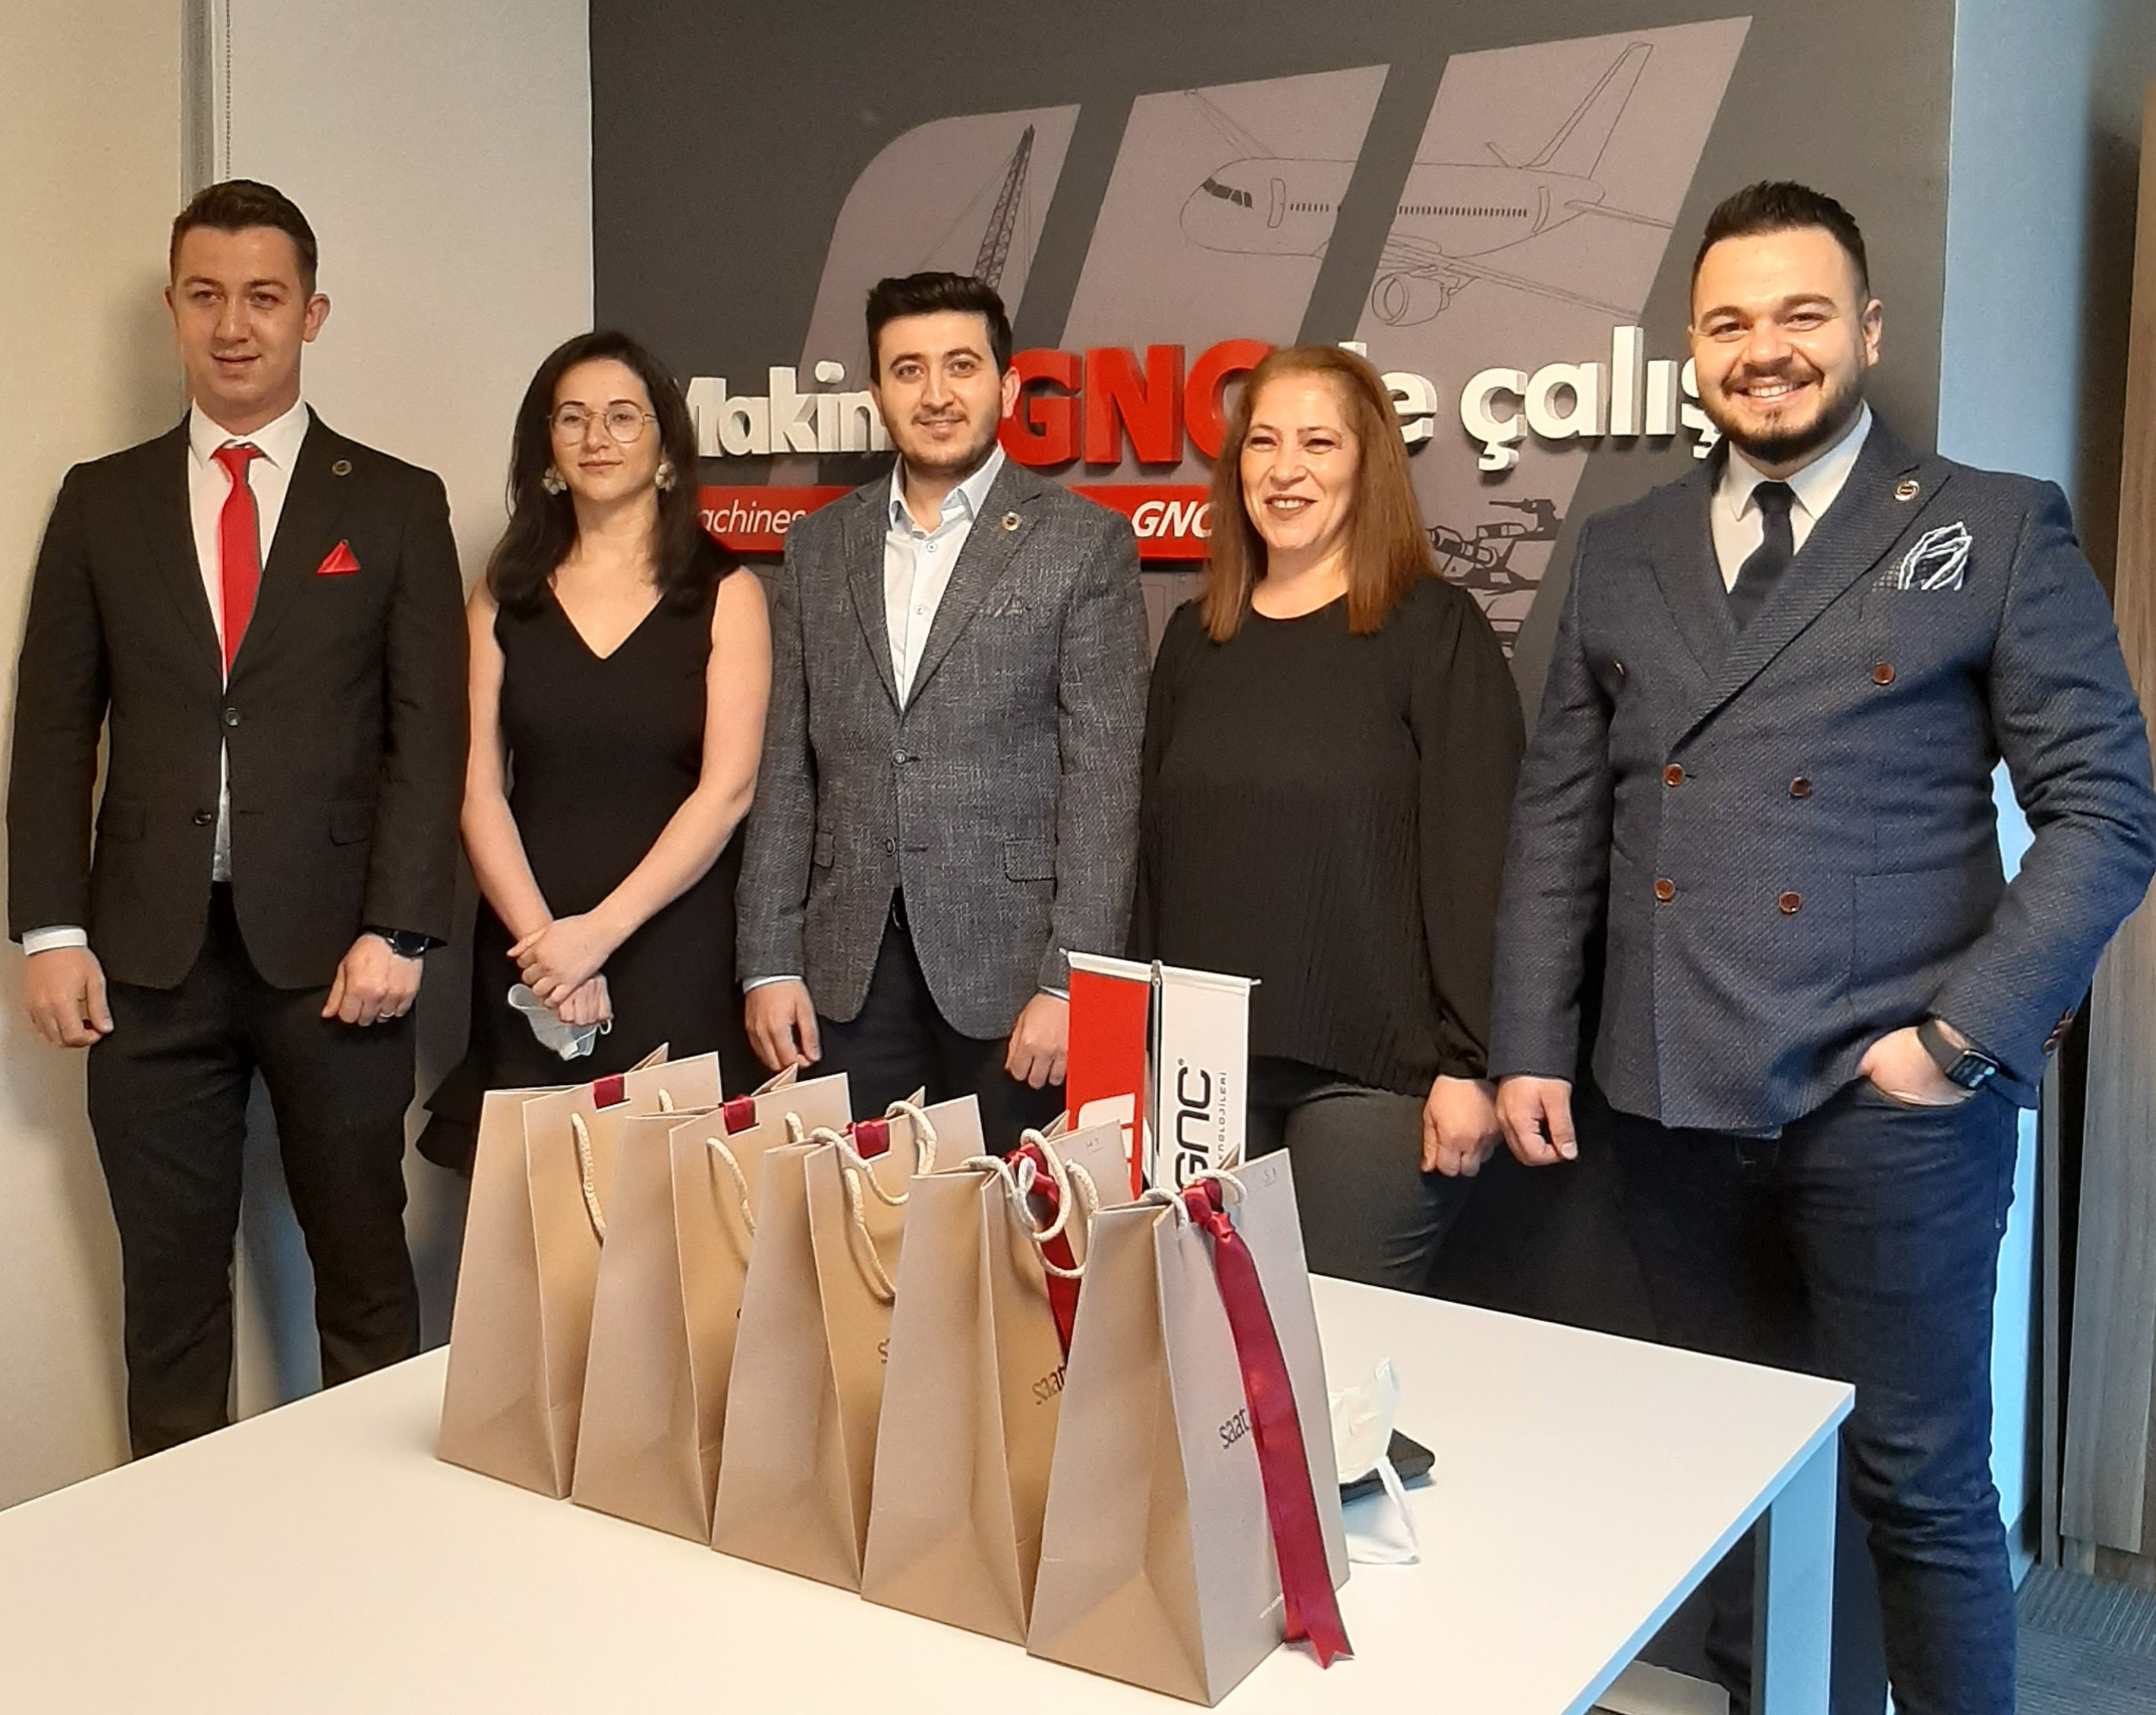 Fifth Year Congratulations Ceremony From Gnc Makina To Its Employees